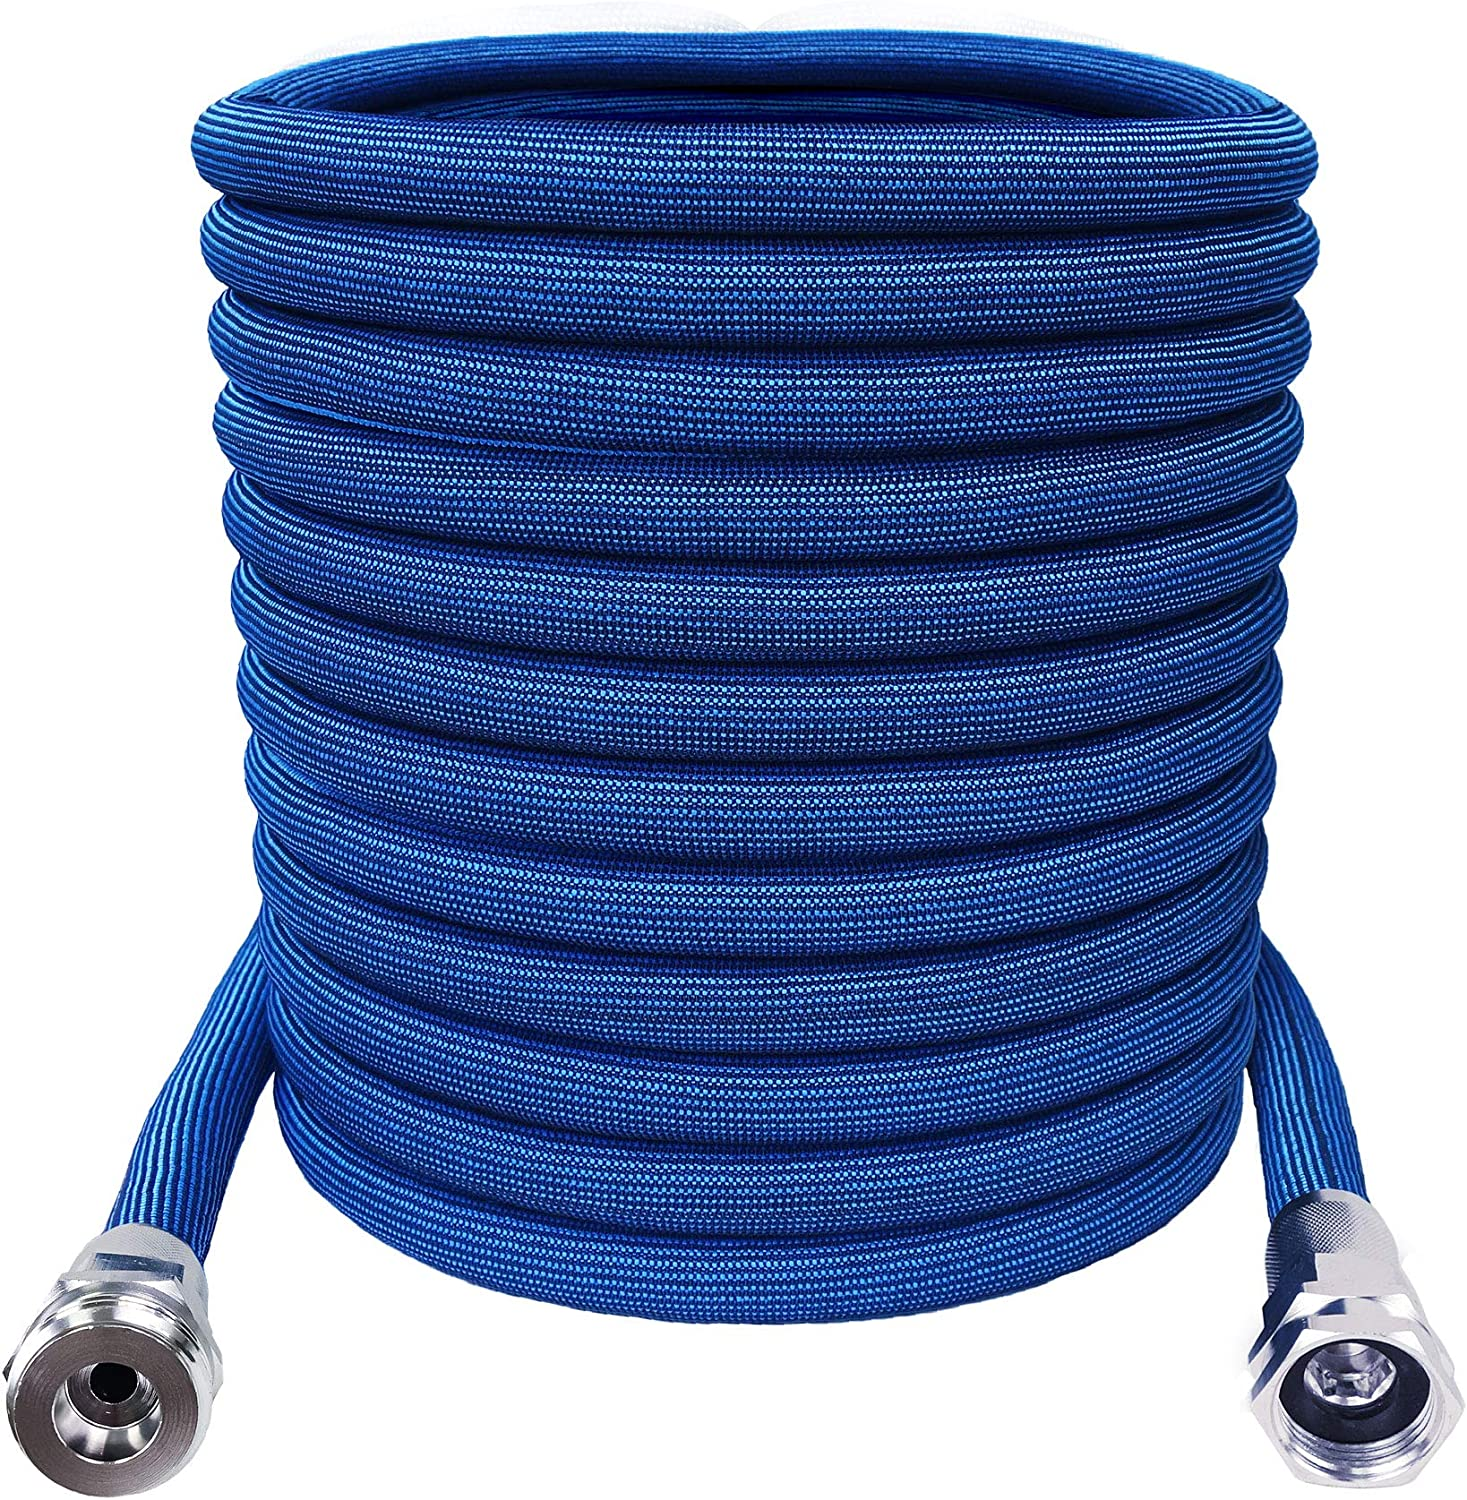 H2O WORKS Expandable Garden Hose 25FT Pocket Hose to 50FT Flex Hose with Strong Crush-Resistant Aluminum Connectors, Flexible, Lightweight Blue Garden Hoses No Kink Silver Bullet Hose, Car Wash Hose